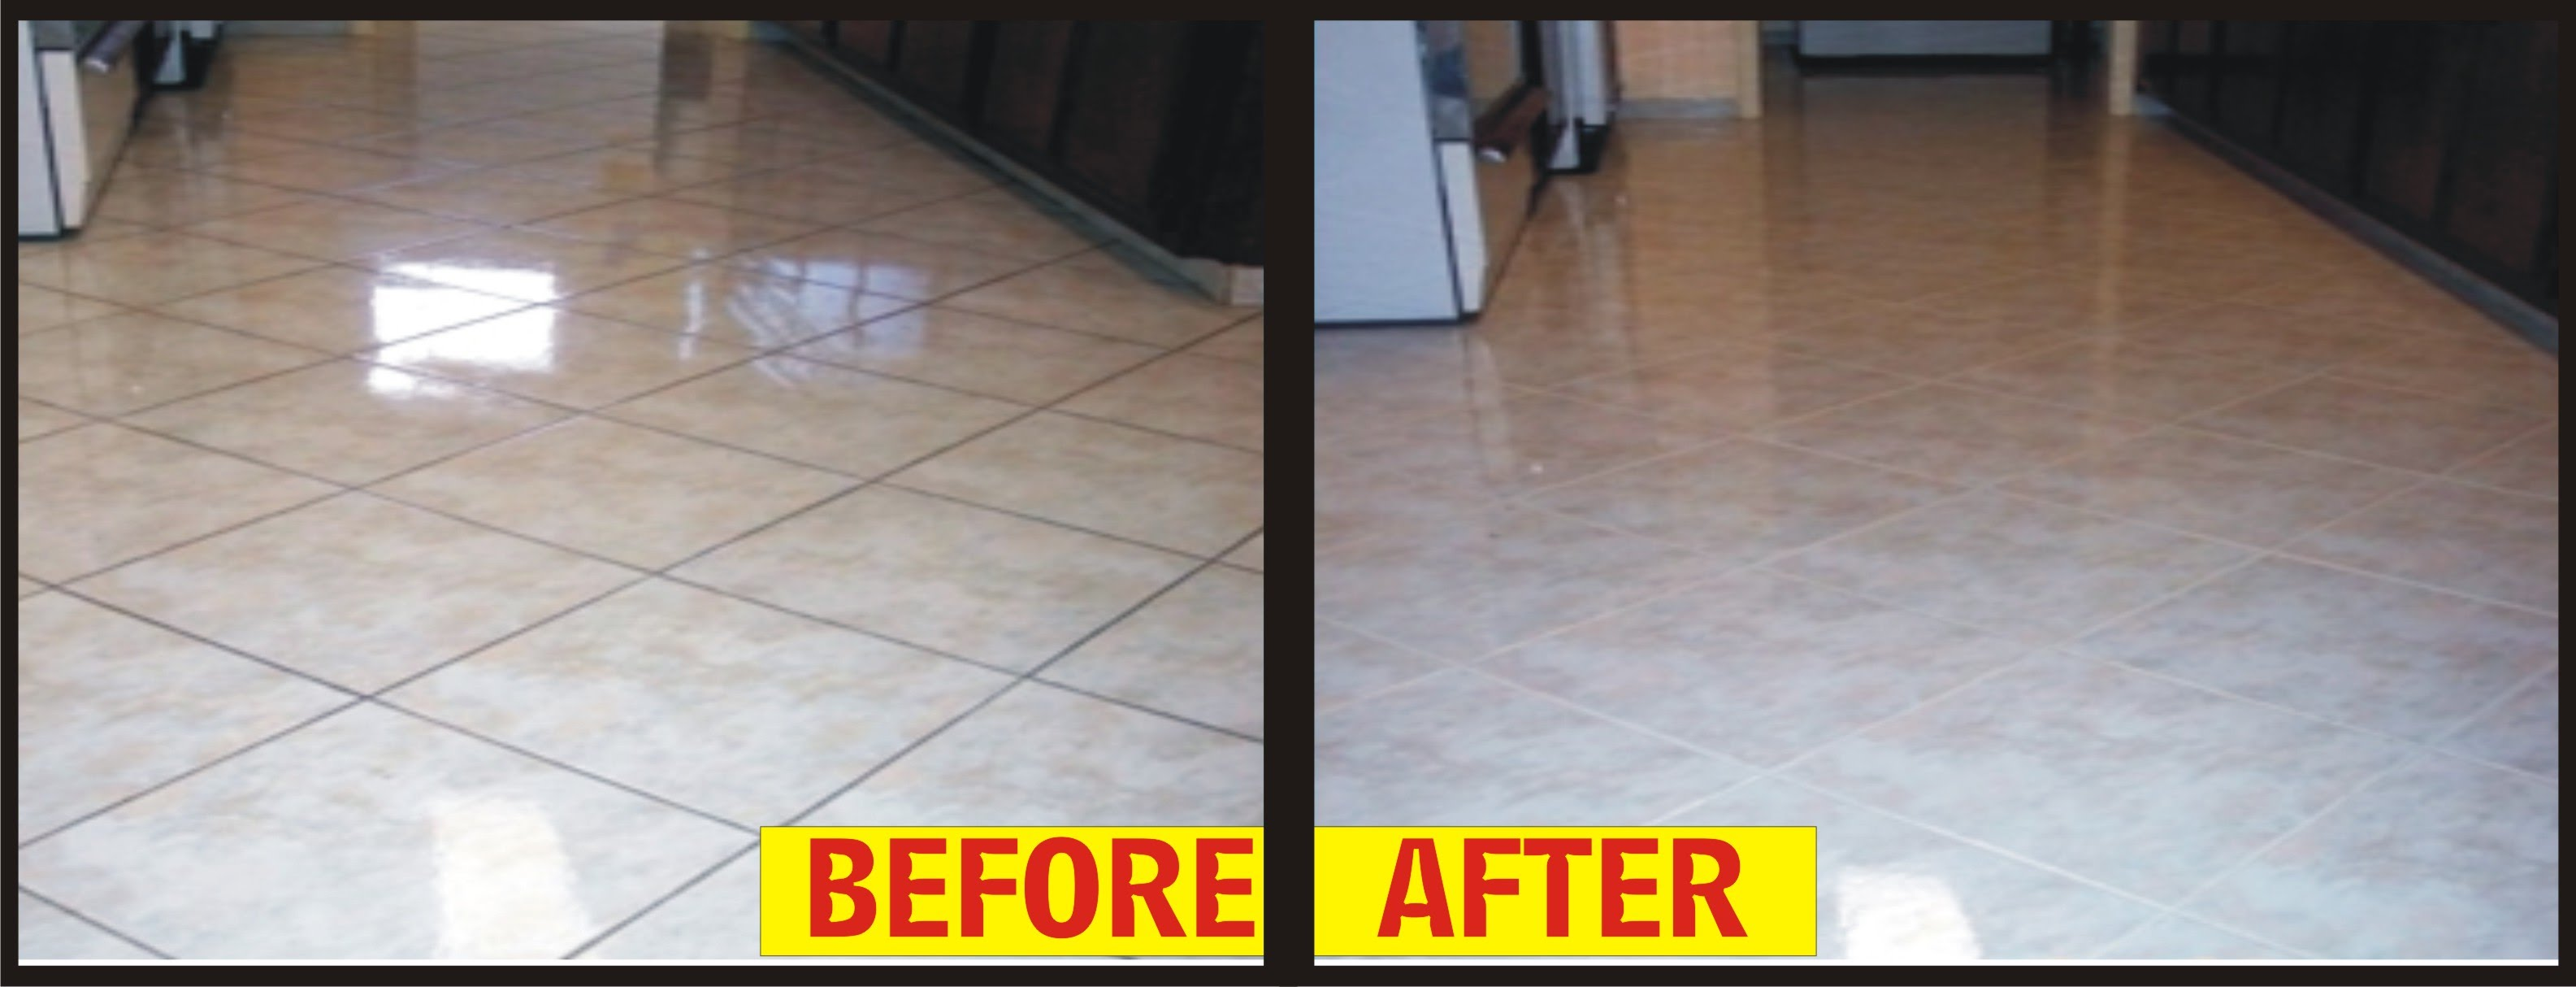 How To Clean Sticky Tile Floors